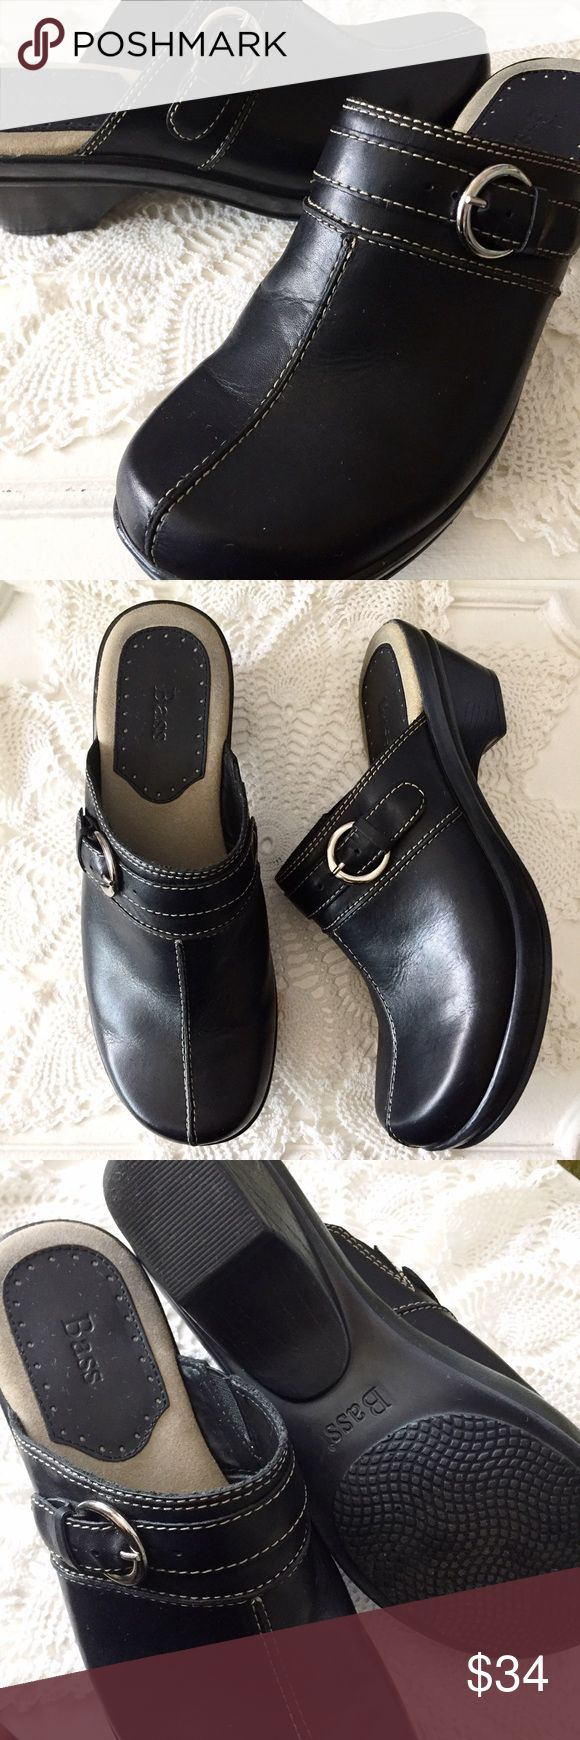 Bass Black Leona Leather Mules Clogs Size 9M Lightly worn Bass black mules/clogs with side buckle. In excellent condition. Size 9M. Bass Shoes Mules & Clogs